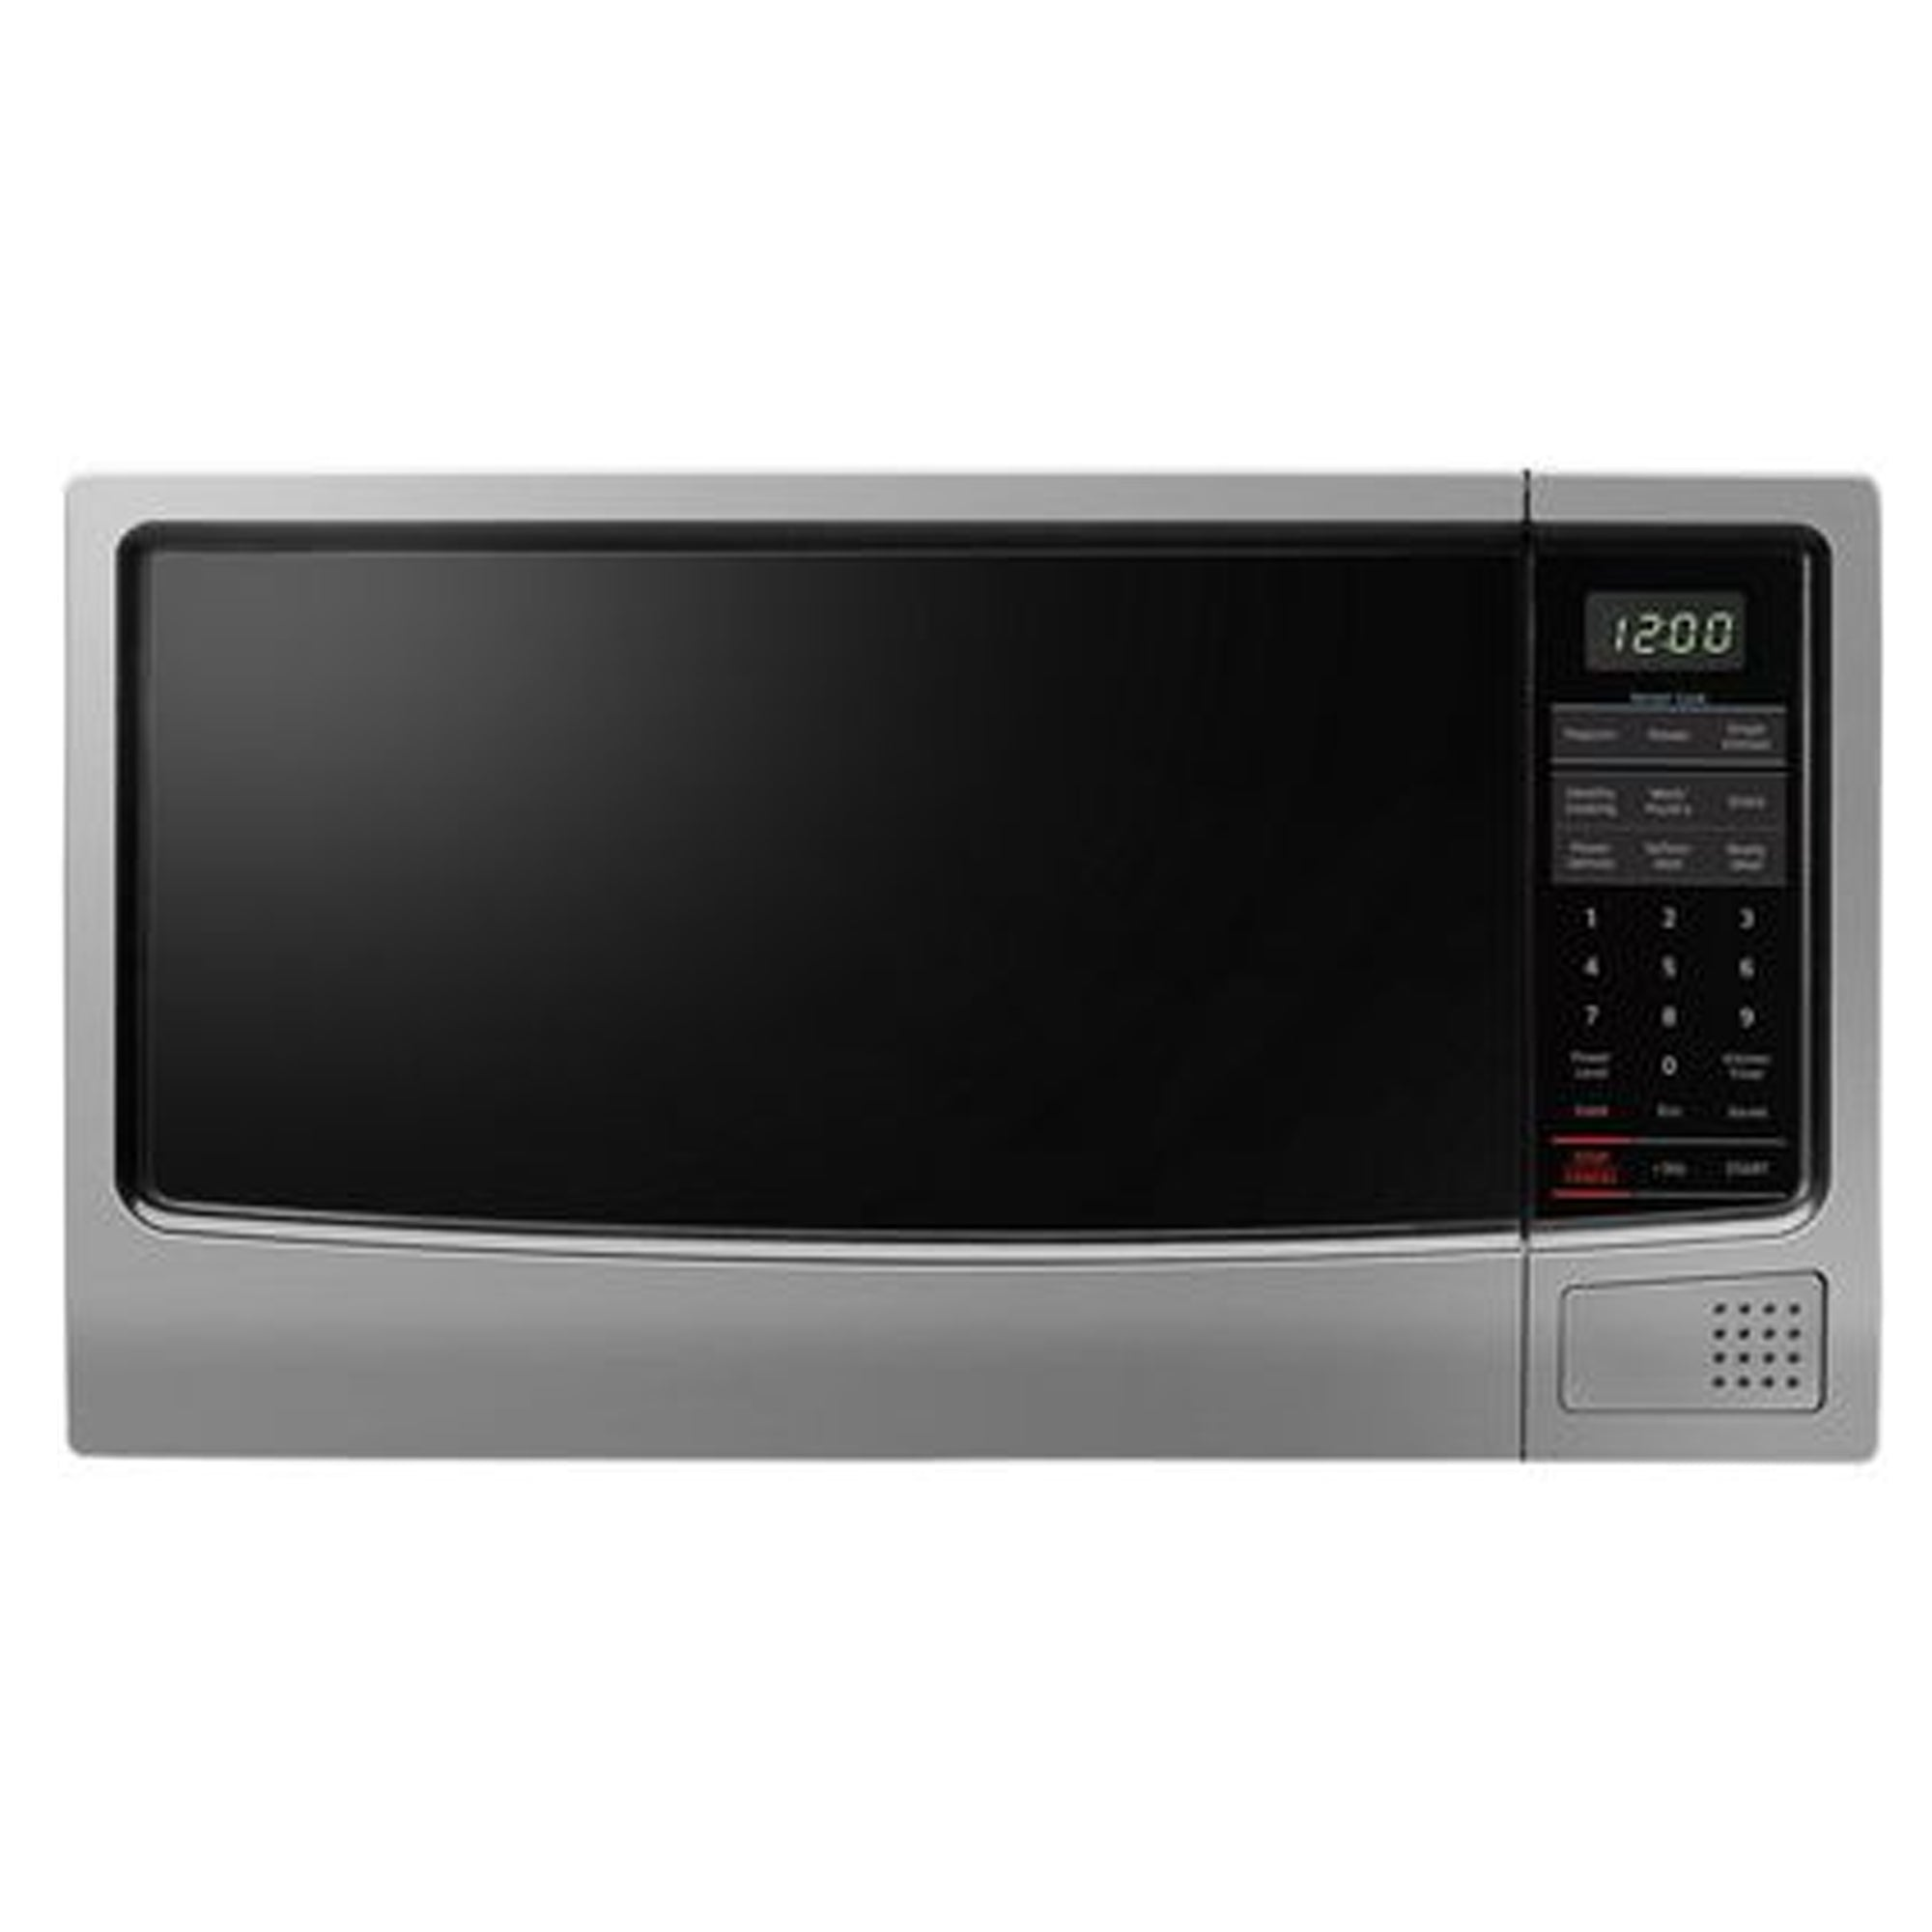 Samsung 32L Solo Microwave Oven Silver ME9114S1